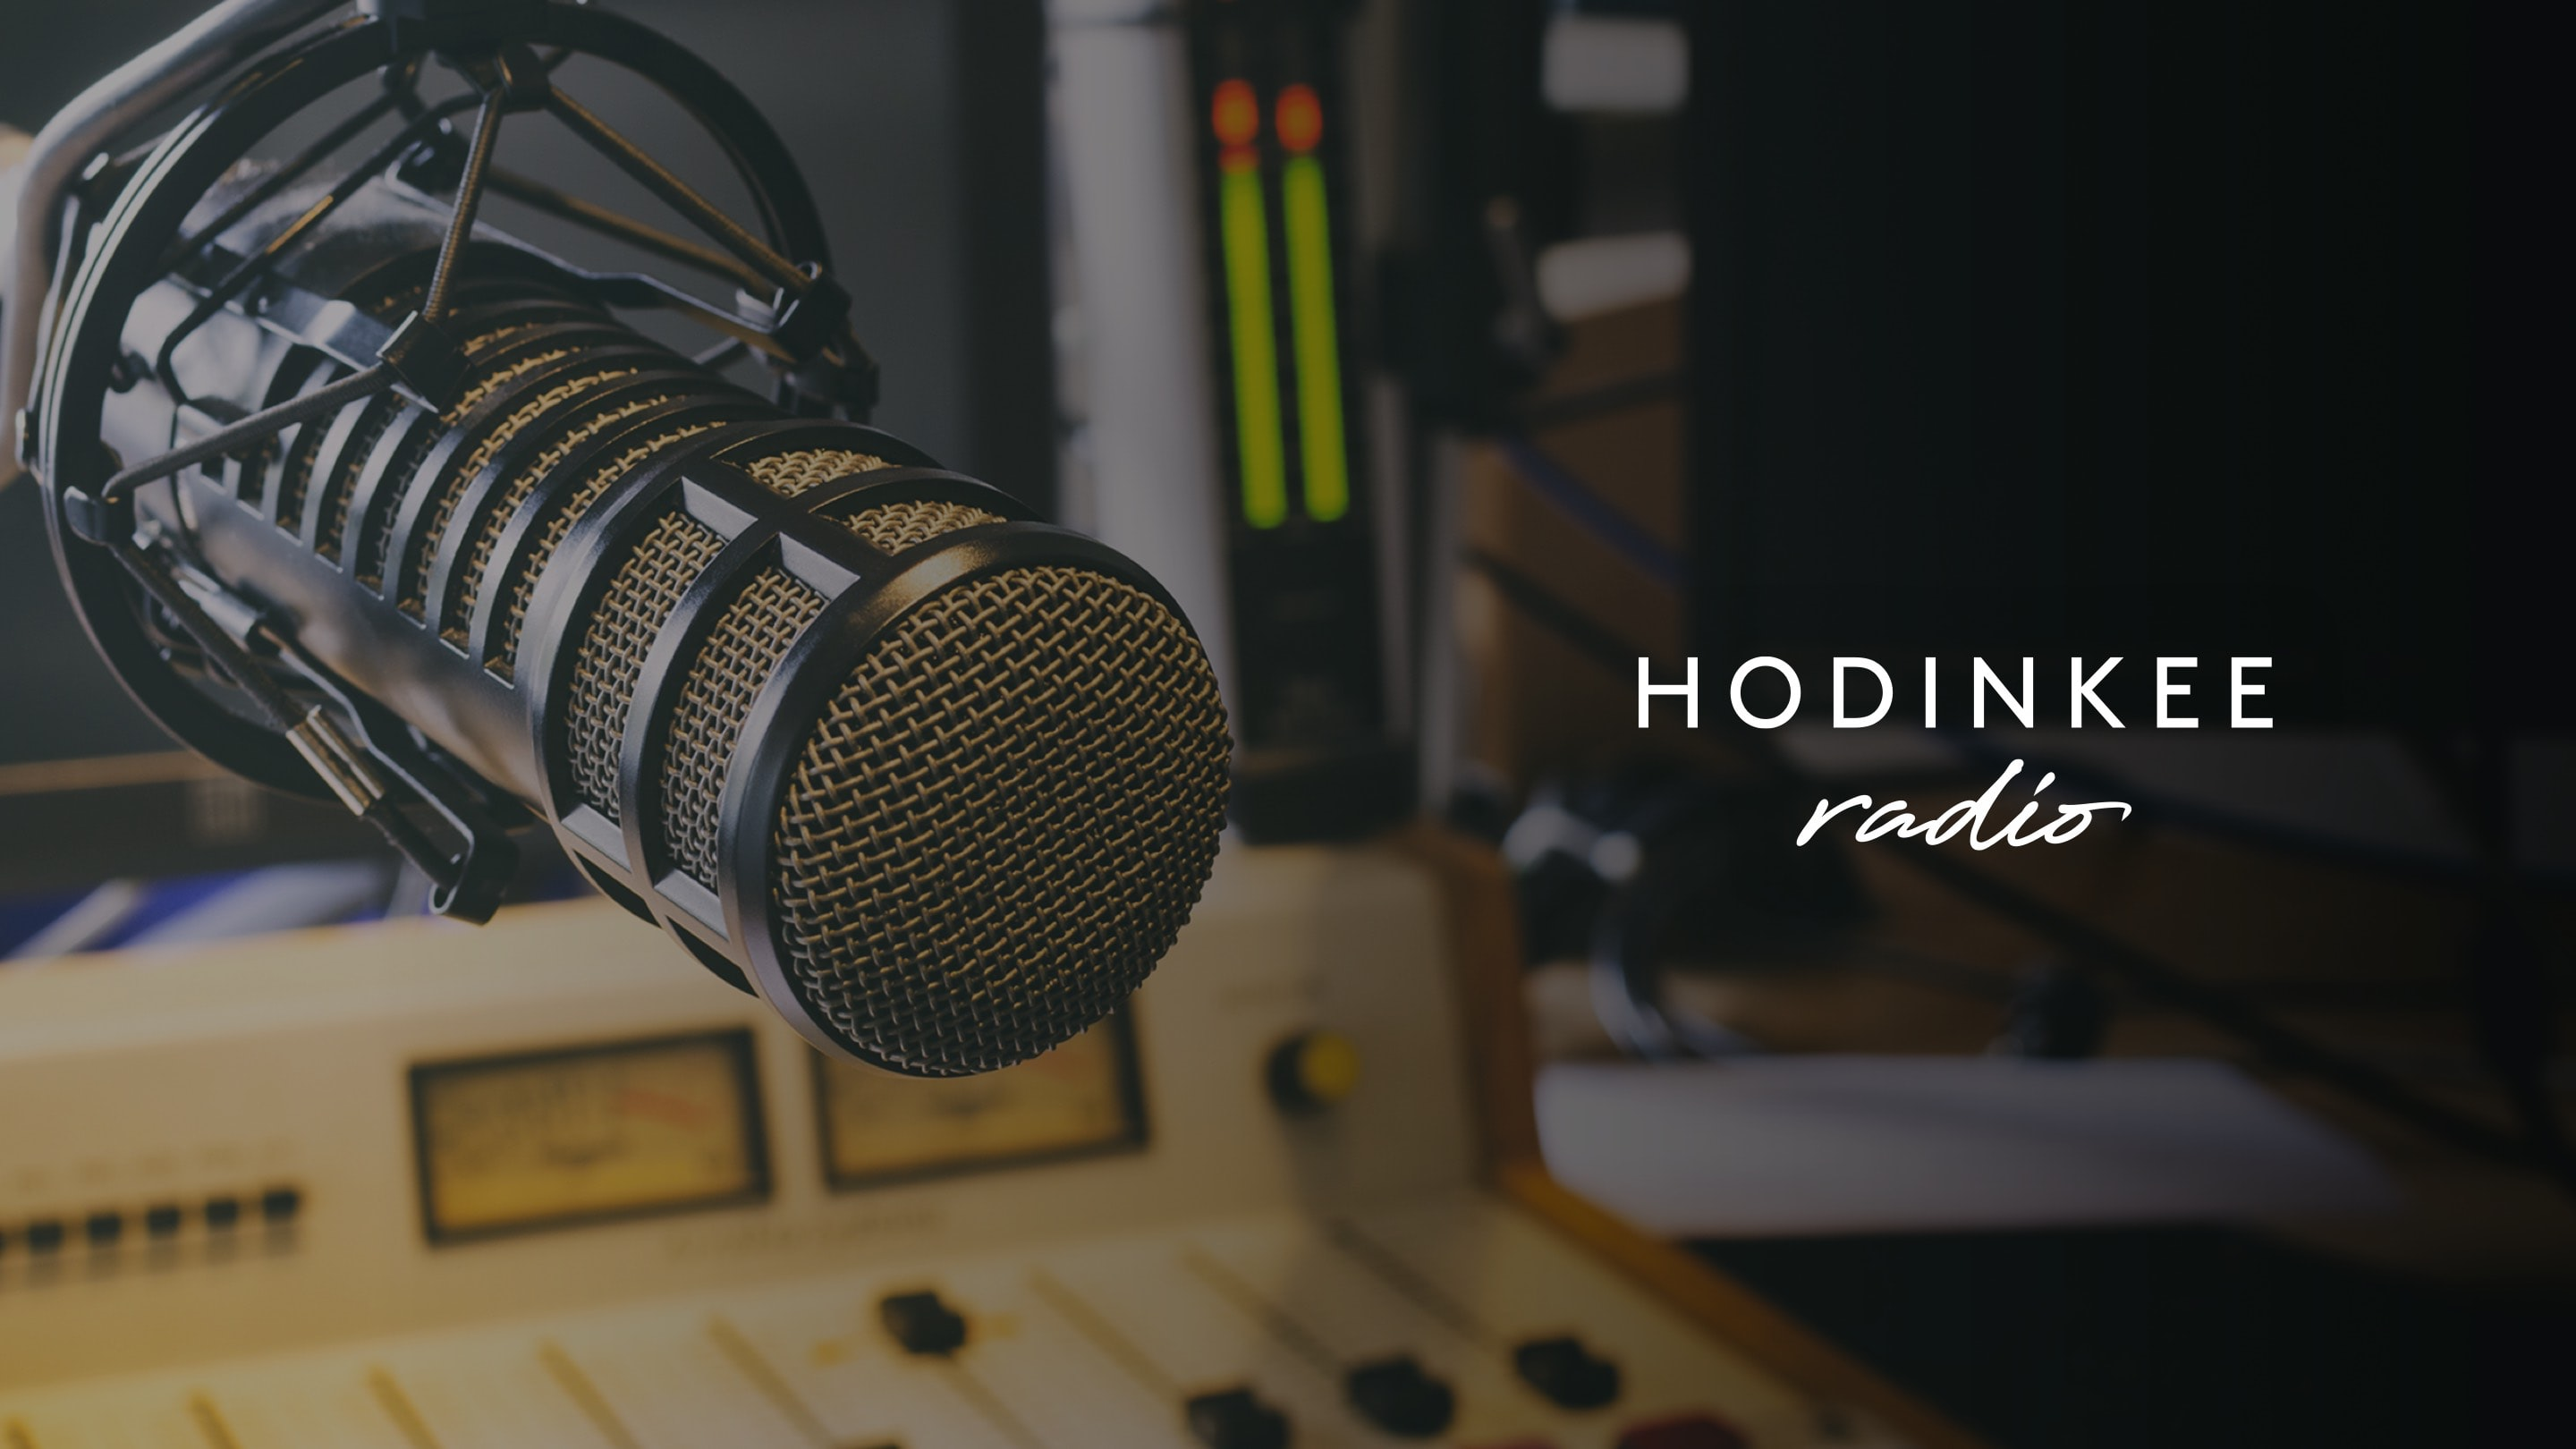 Introducing: HODINKEE Radio hero image final side by side